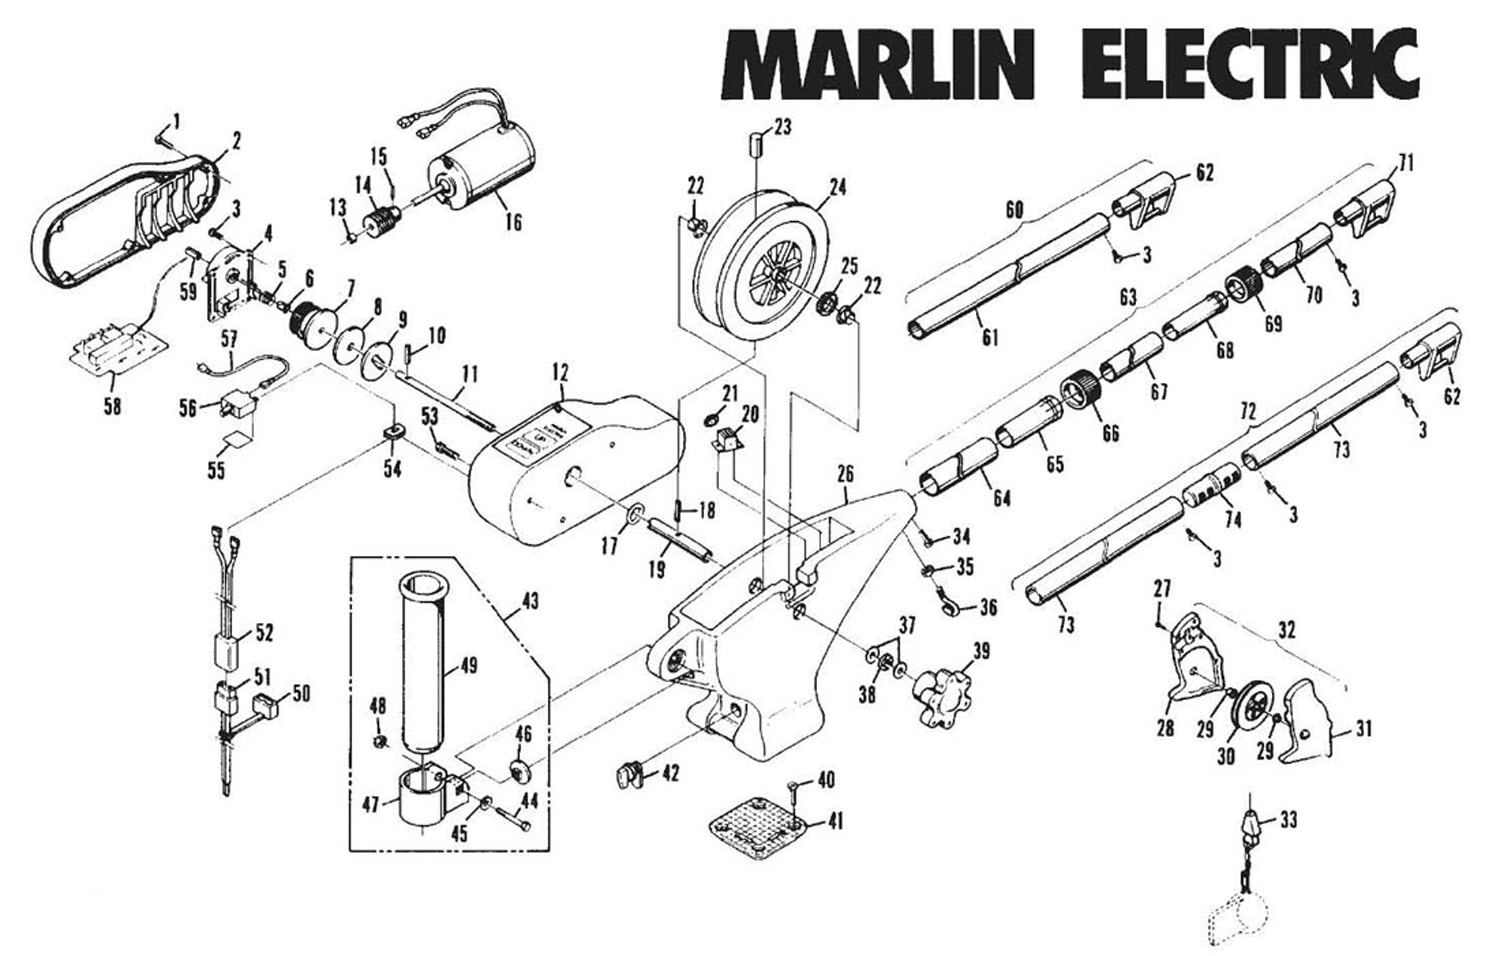 order cannon marlin electric downrigger parts from fish307 com